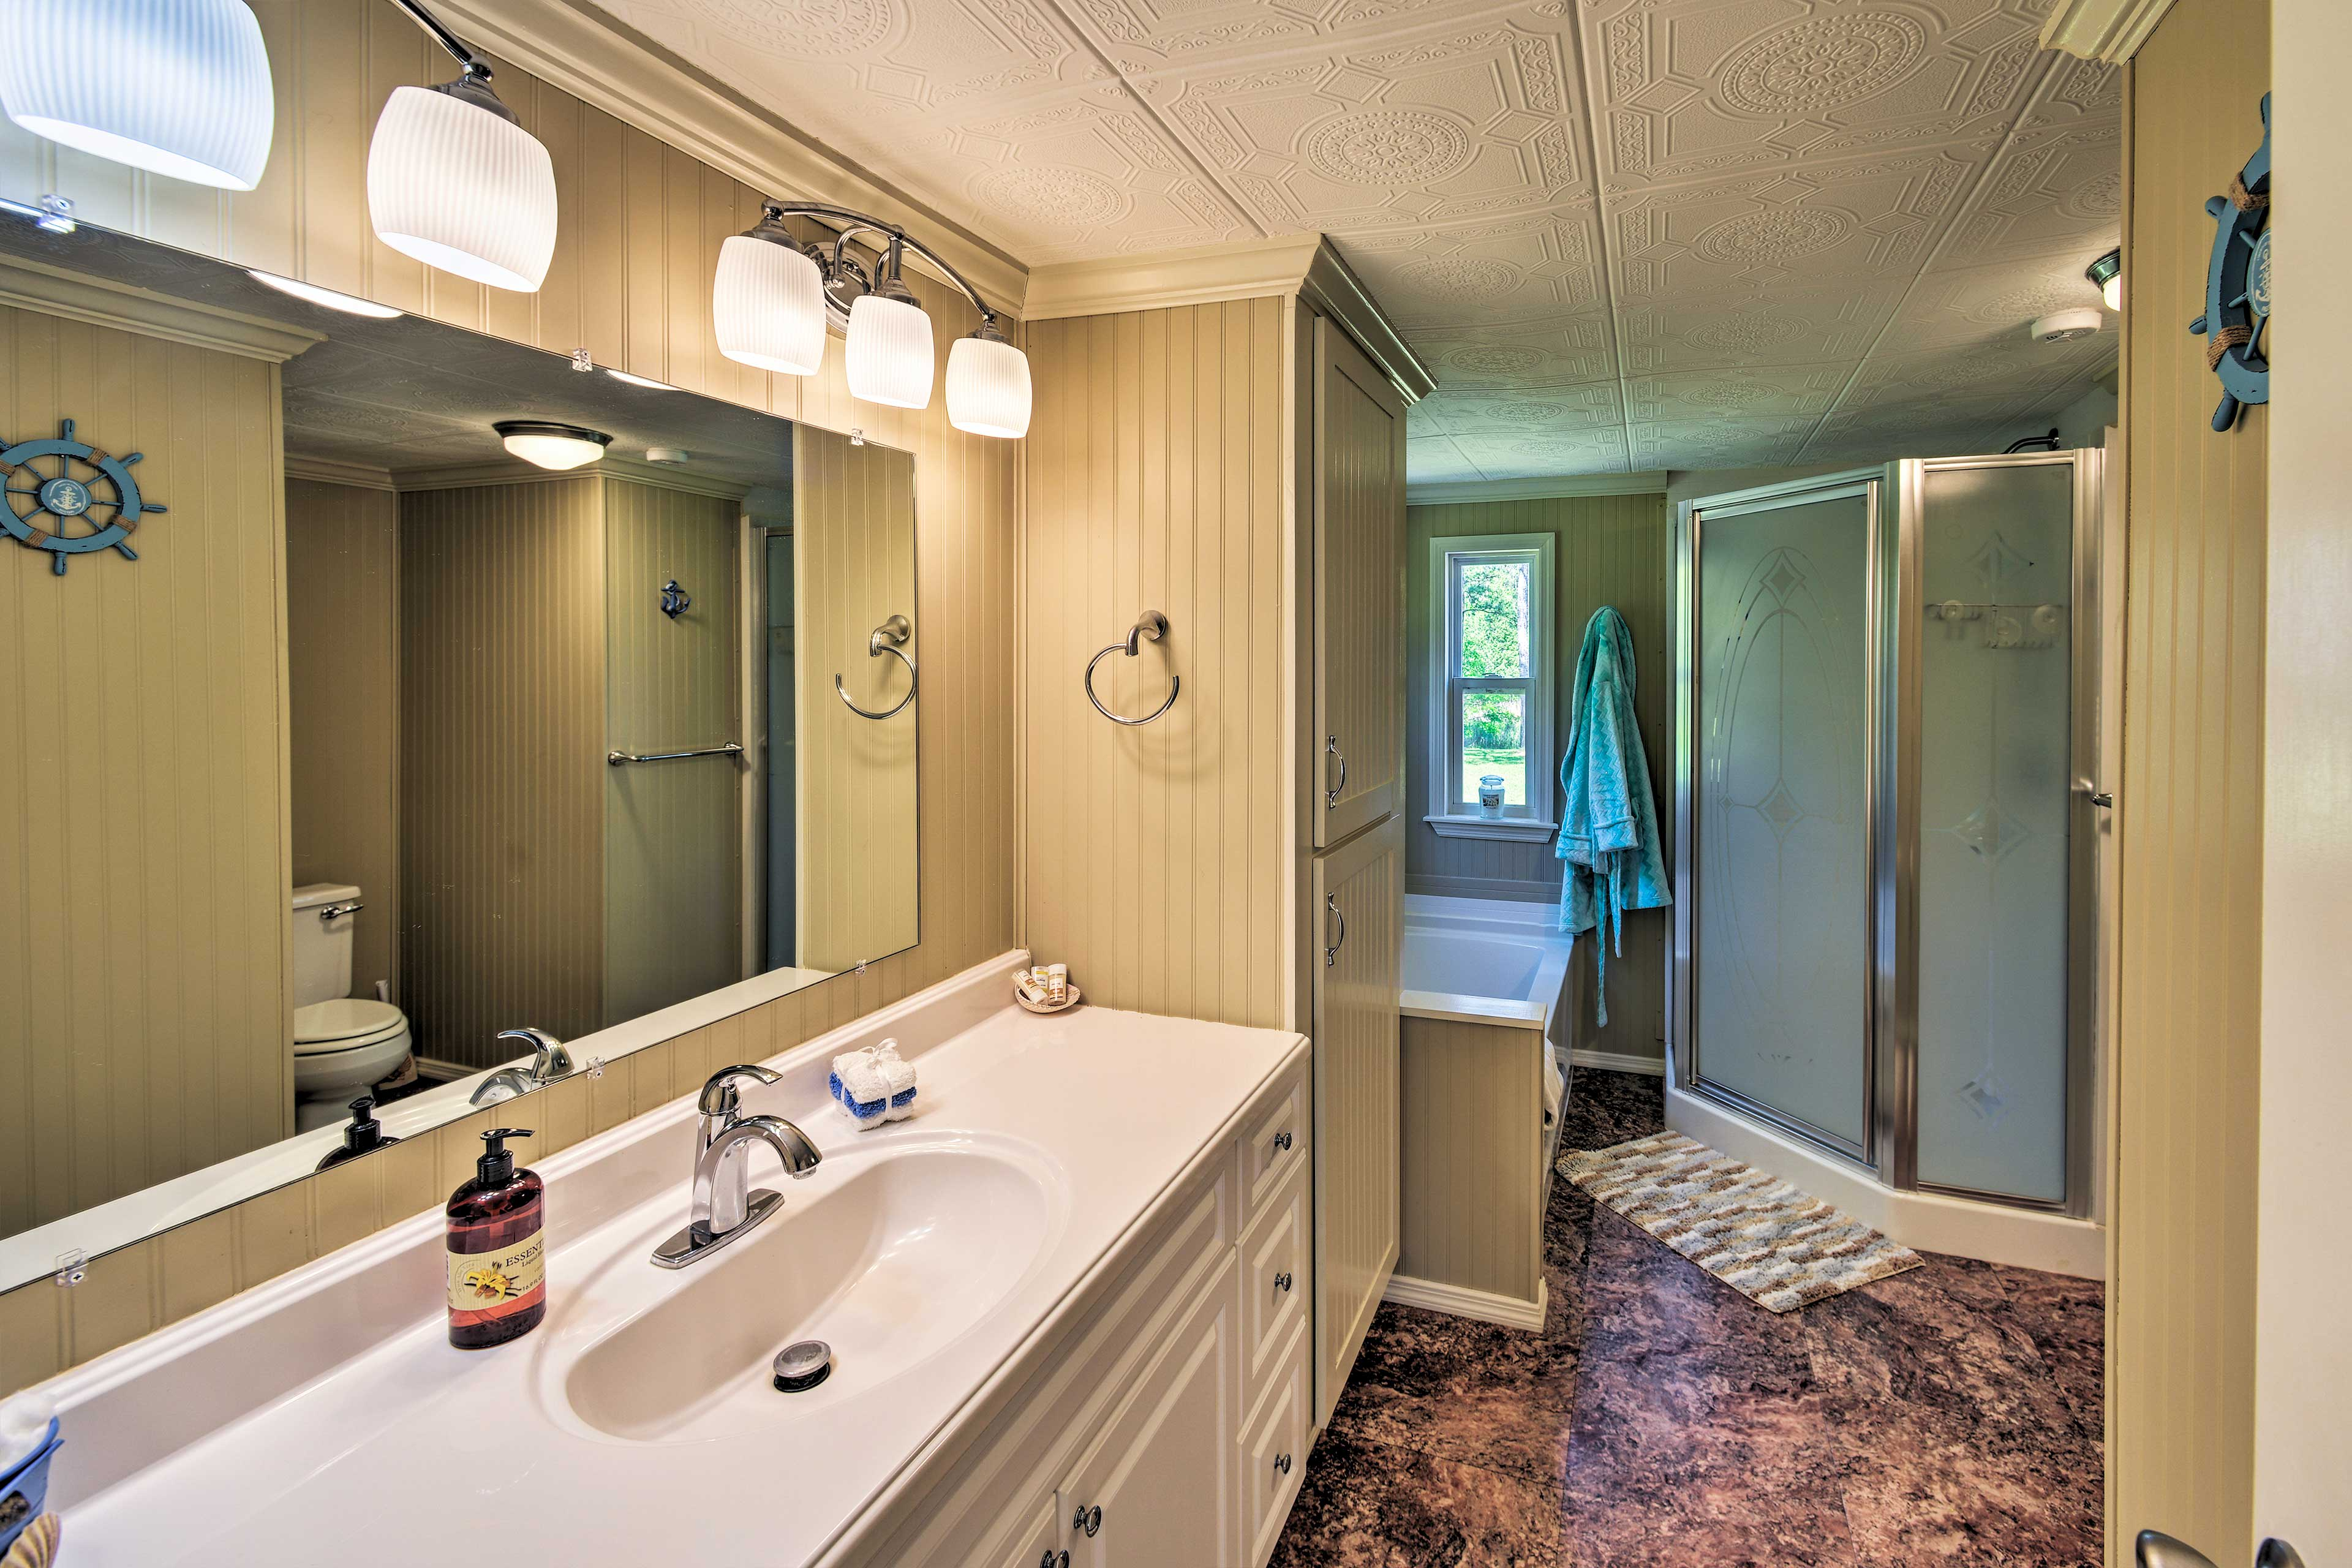 The spacious bathroom offers plenty of room for morning routines.